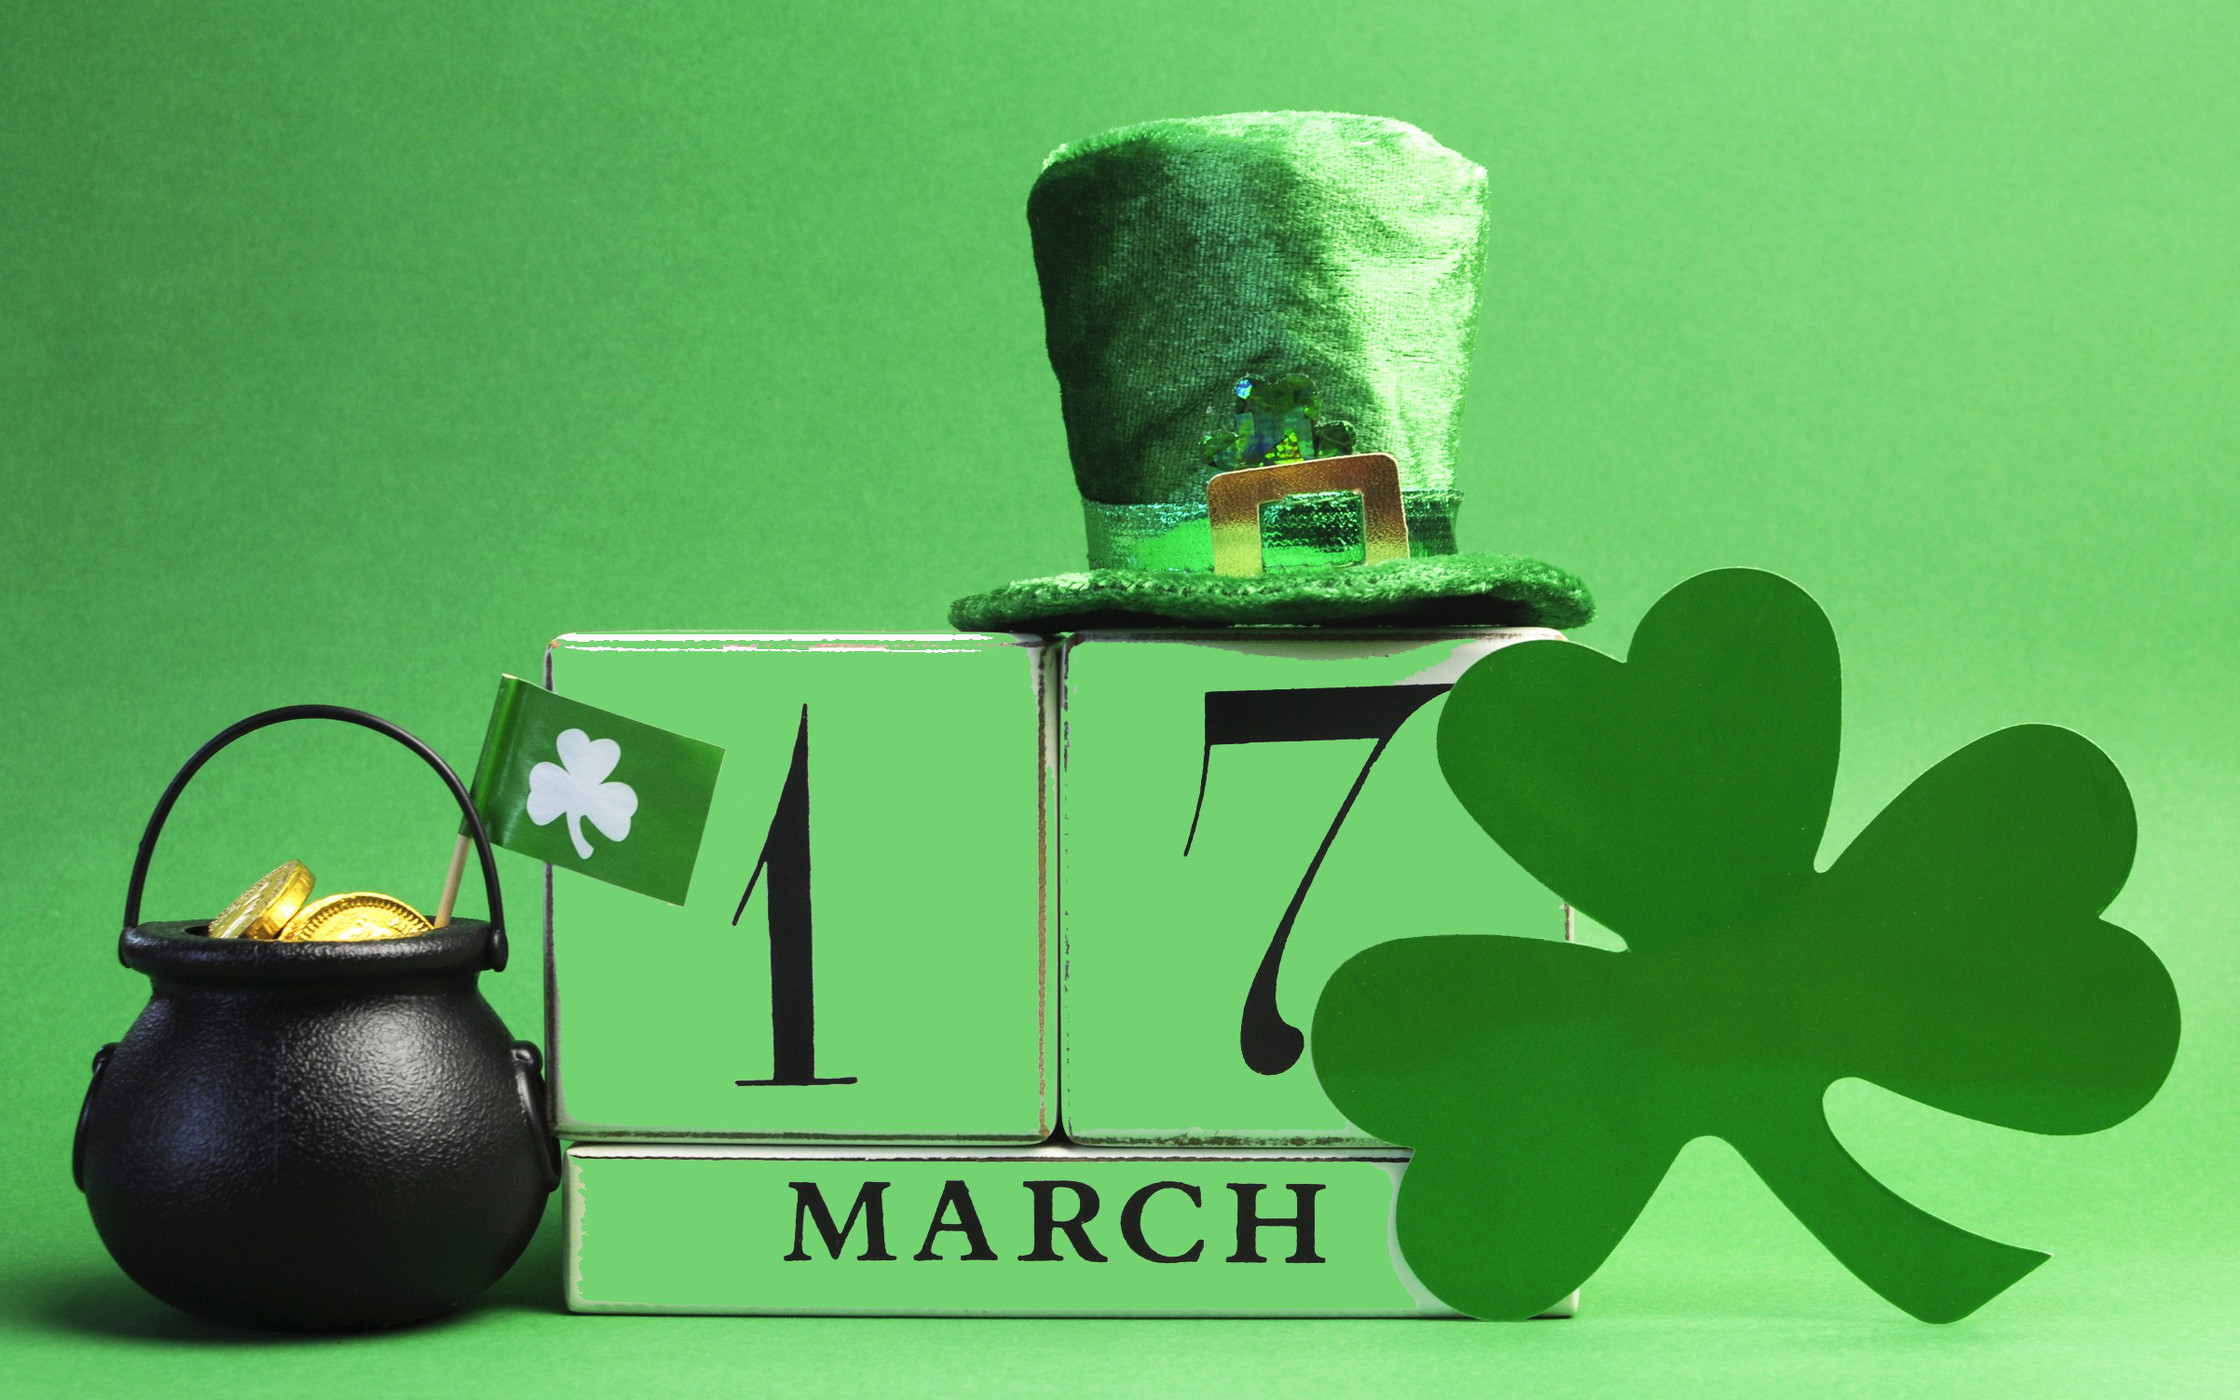 2240x1400 Happy St Patricks Day March 17 Wallpaper